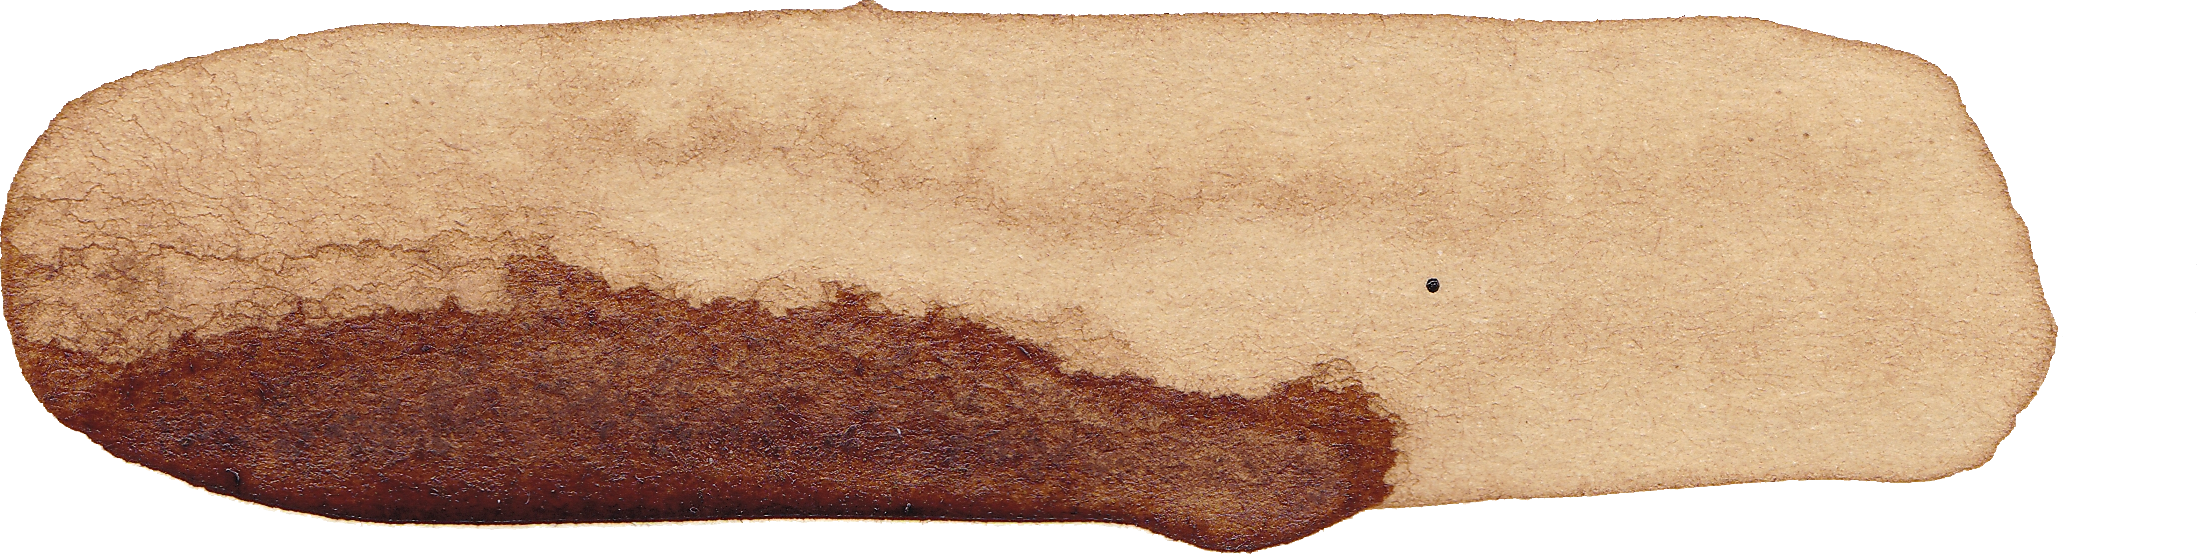 9 Coffee Watercolor Brush Stroke (PNG Transparent) | OnlyGFX com